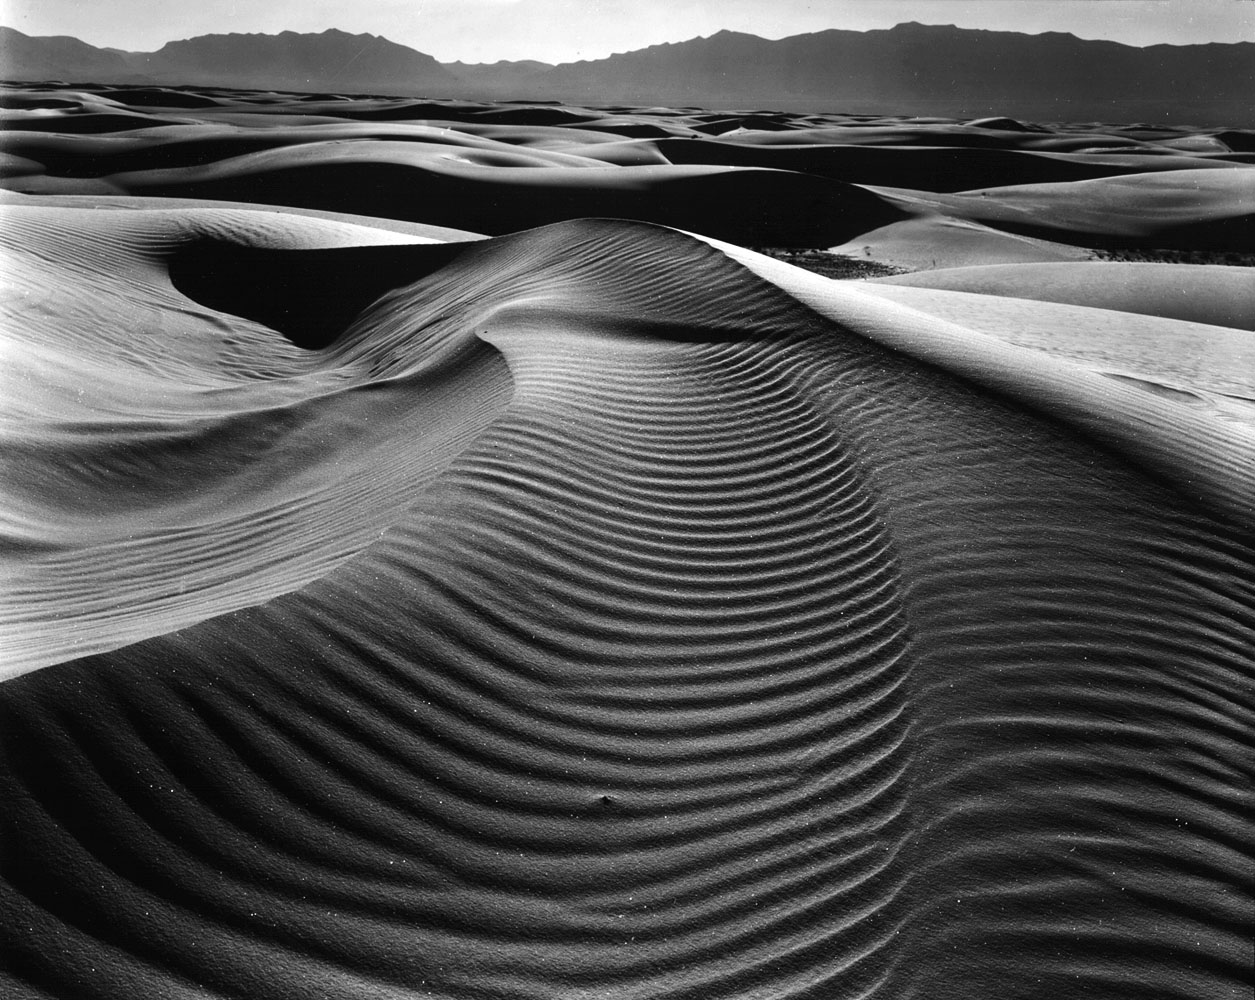 Dunes and Mountains,  White Sands, New Mexico, 1945. On his 80th birthday, the photographer burned all his life's negatives in front of friends and family at his home in California.  The prints are posterity, not the negatives,  he said.  I don't want students and teachers to print my work.